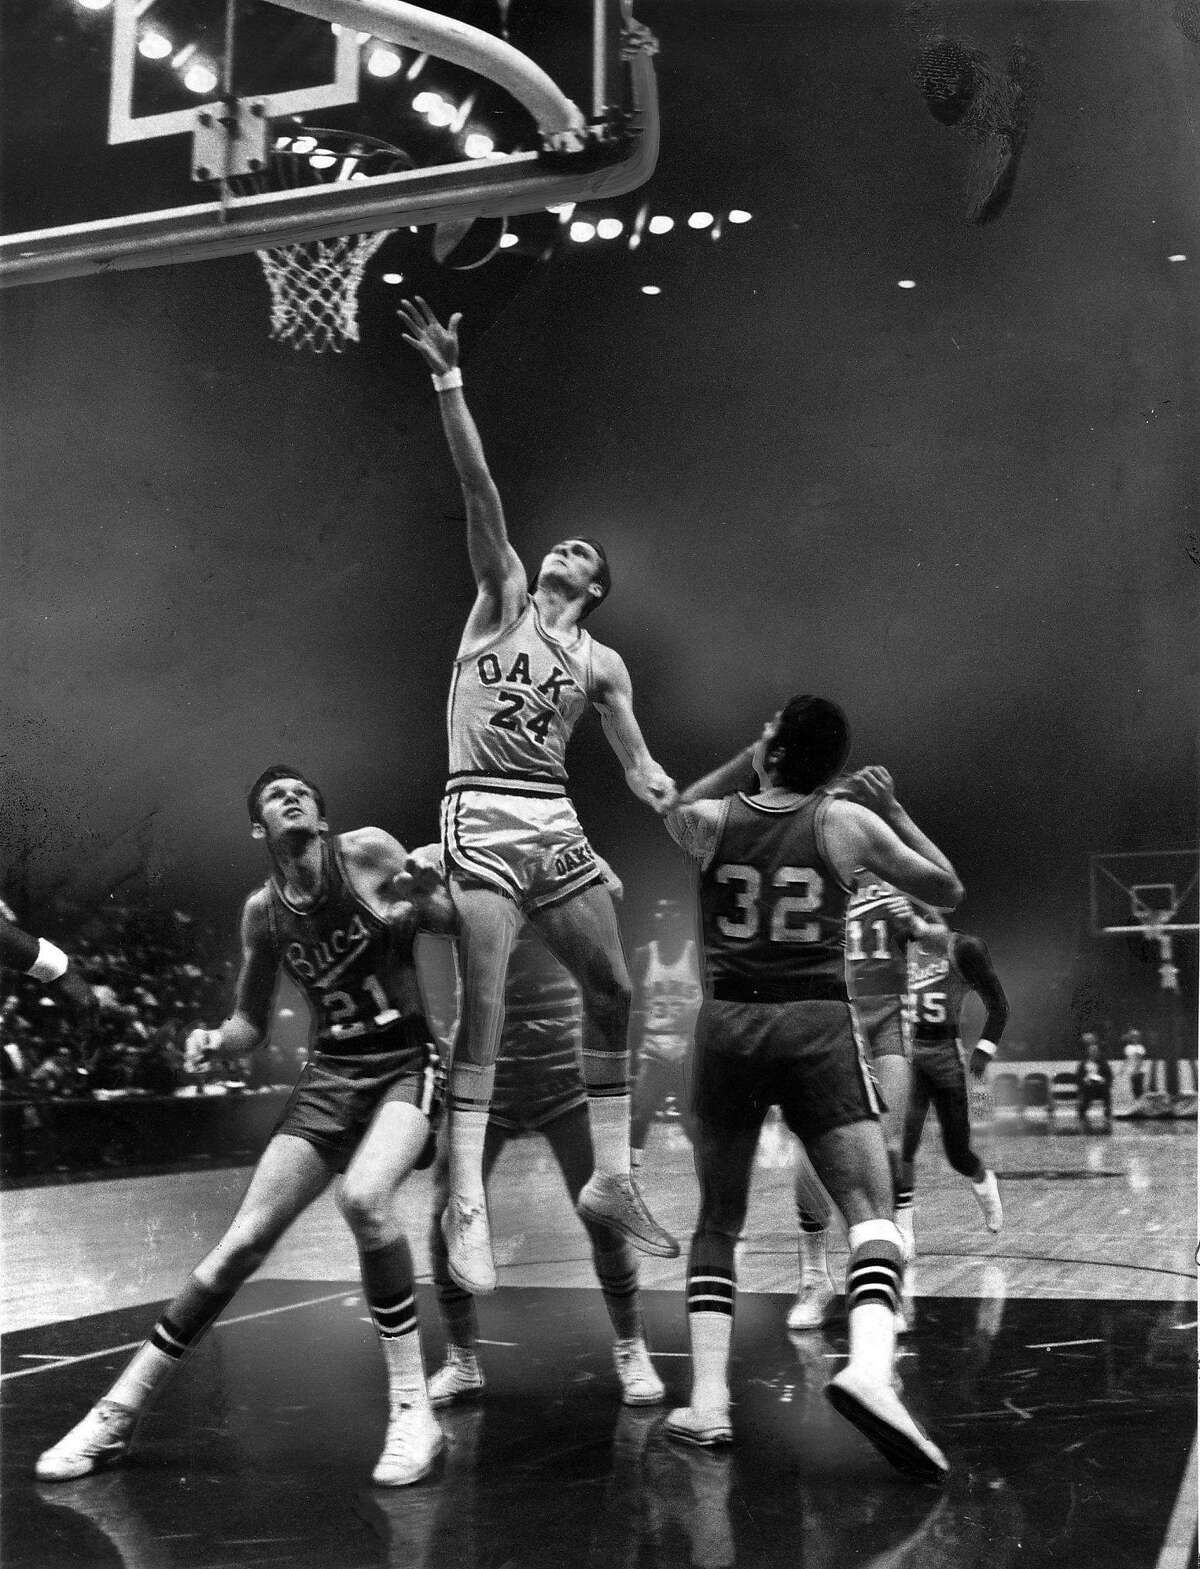 The Oakland Oaks' Rick Barry scores in a game against the New Orleans Buccaneers during a game in October 1968.